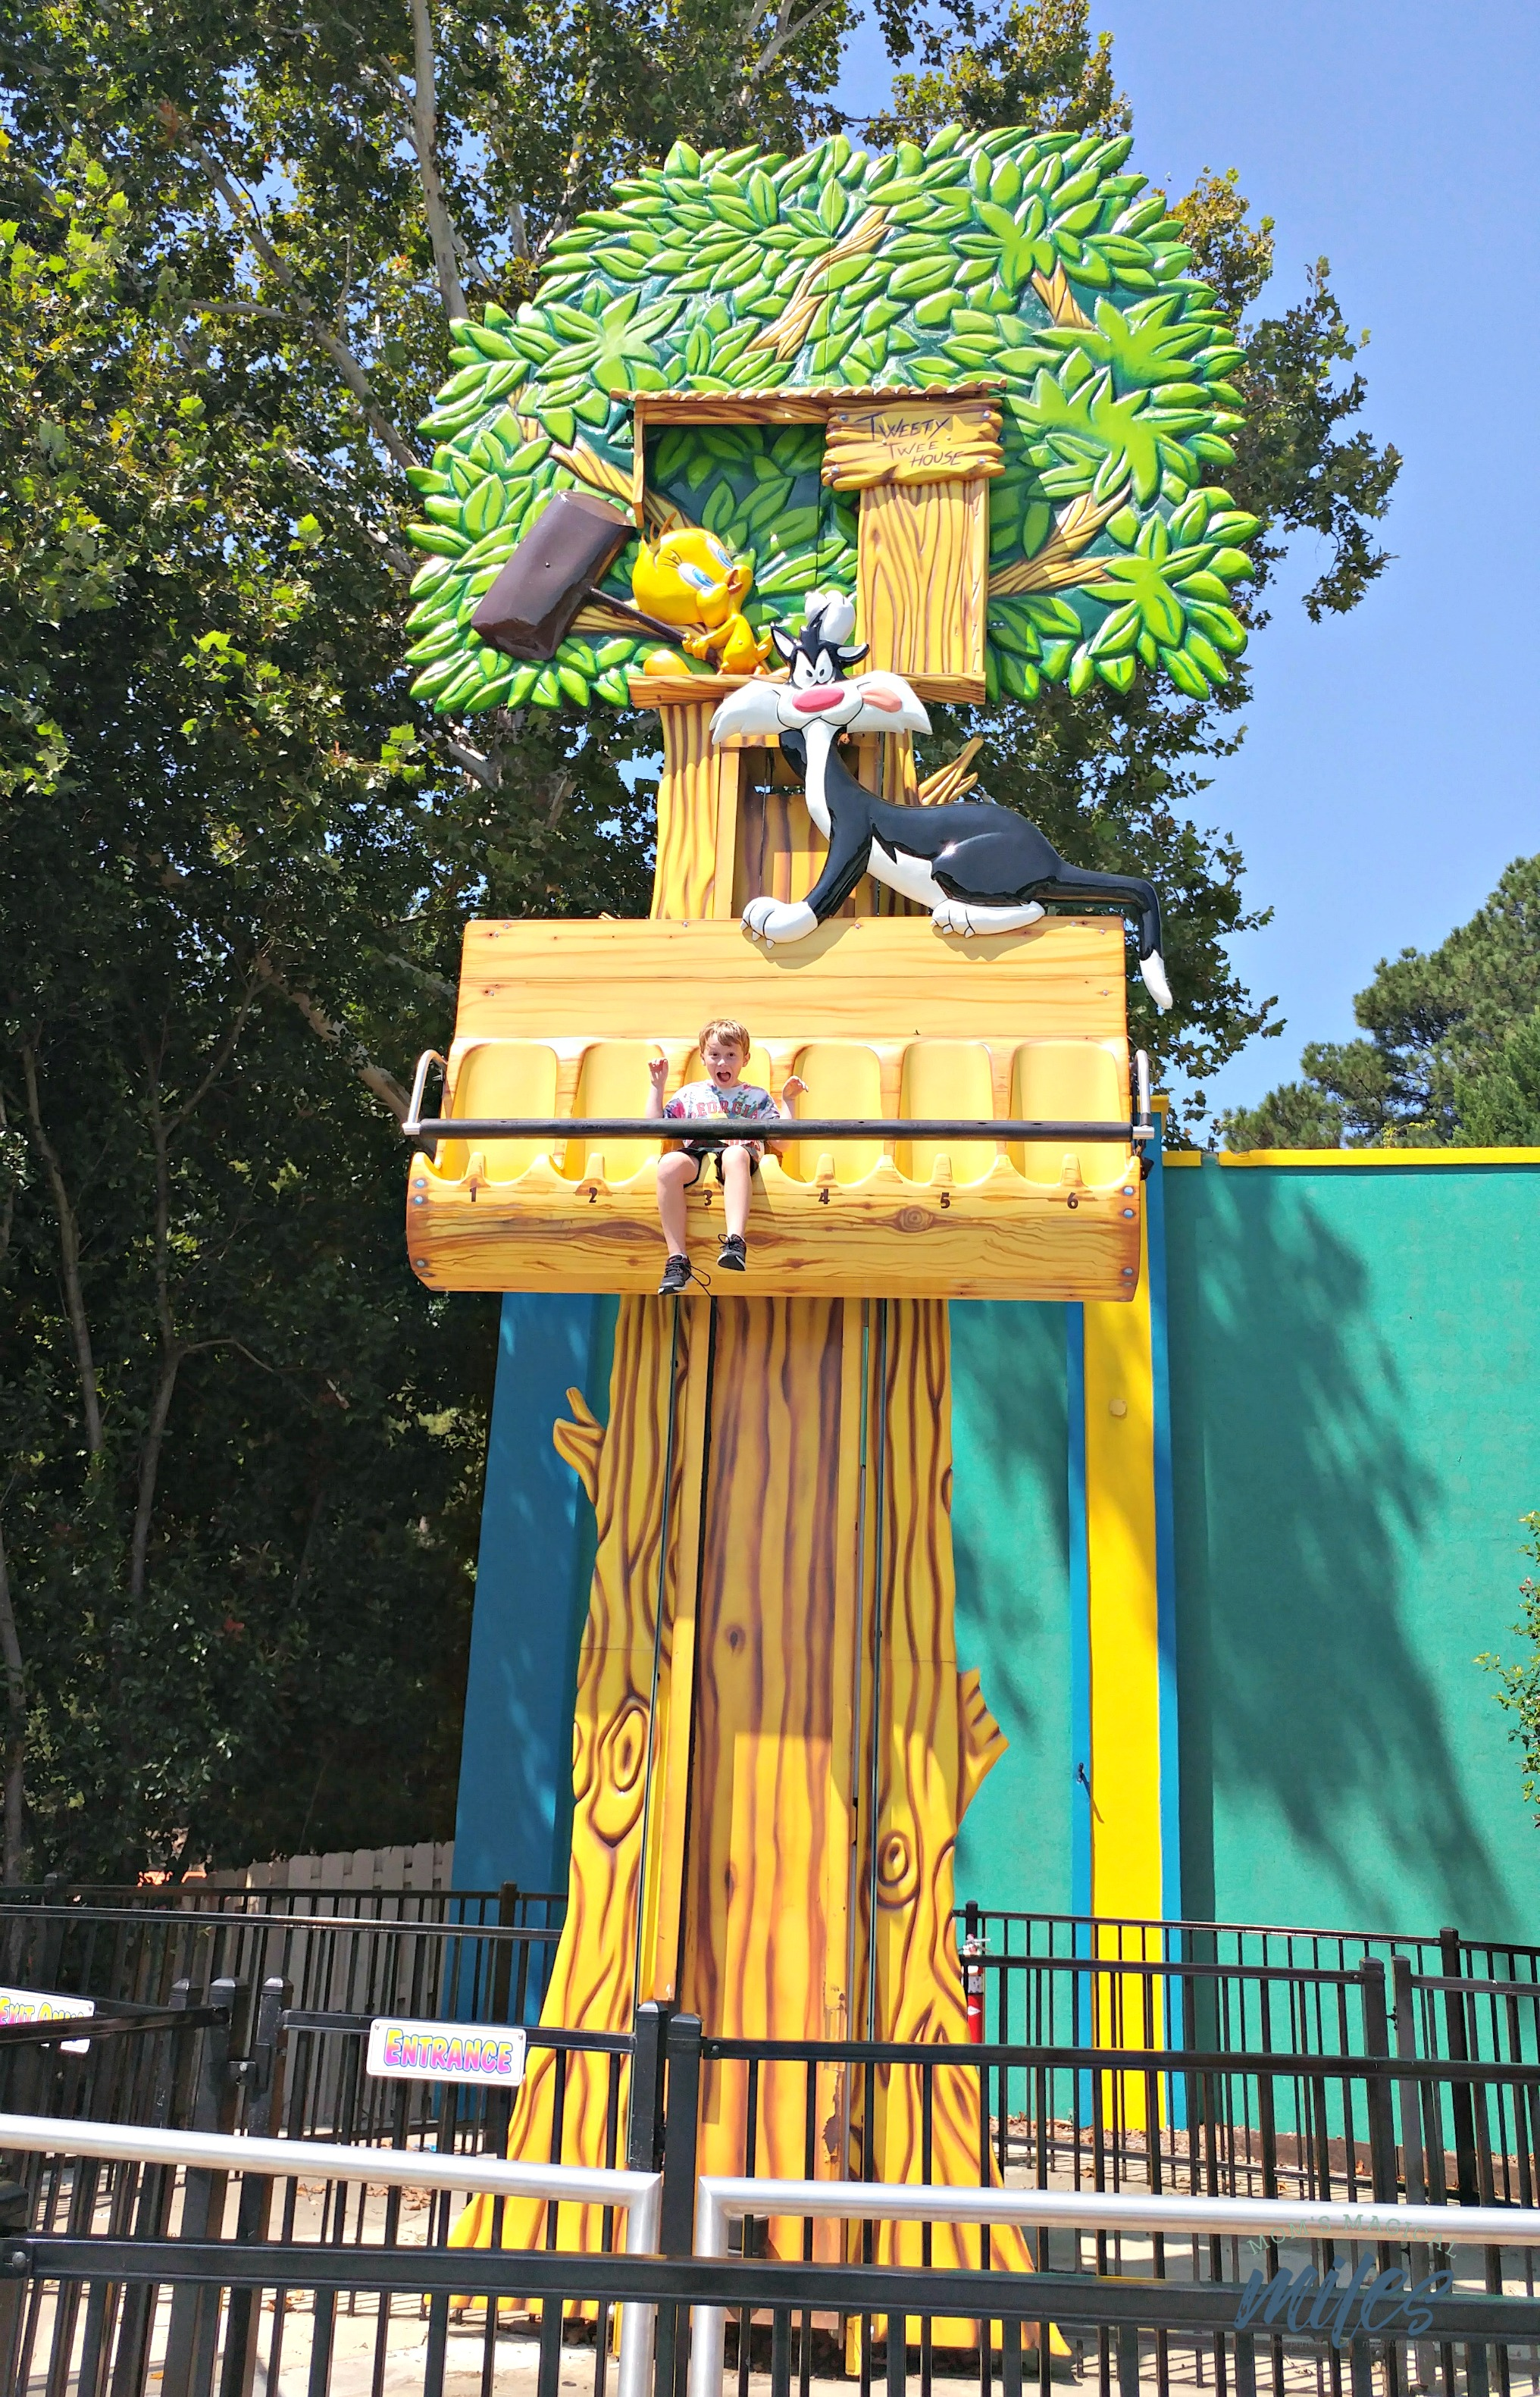 Bugs Bunny Boomtown offers six different kid-friendly ride at Six Flags Over Georgia!